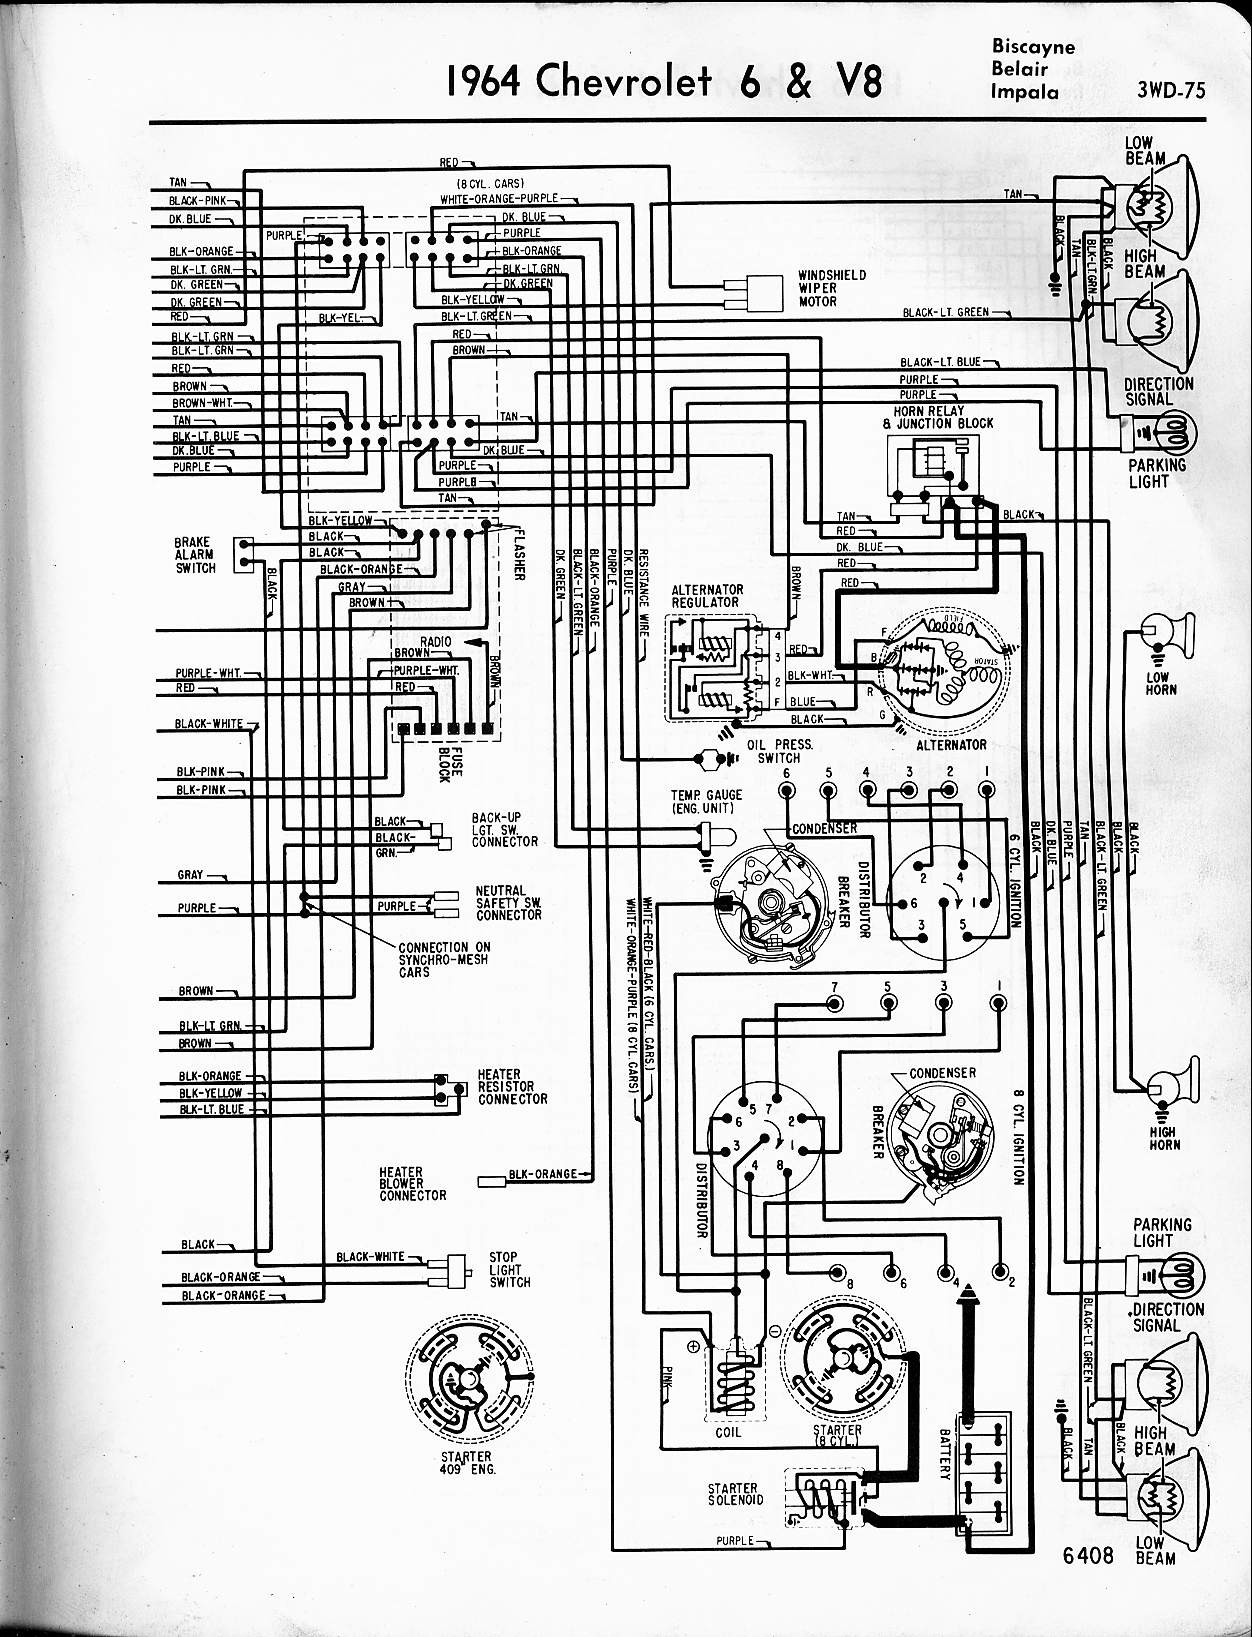 2008 impala wiring schematic - impala wiring diagram example electrical  wiring diagram u2022 rh huntervalleyhotels co